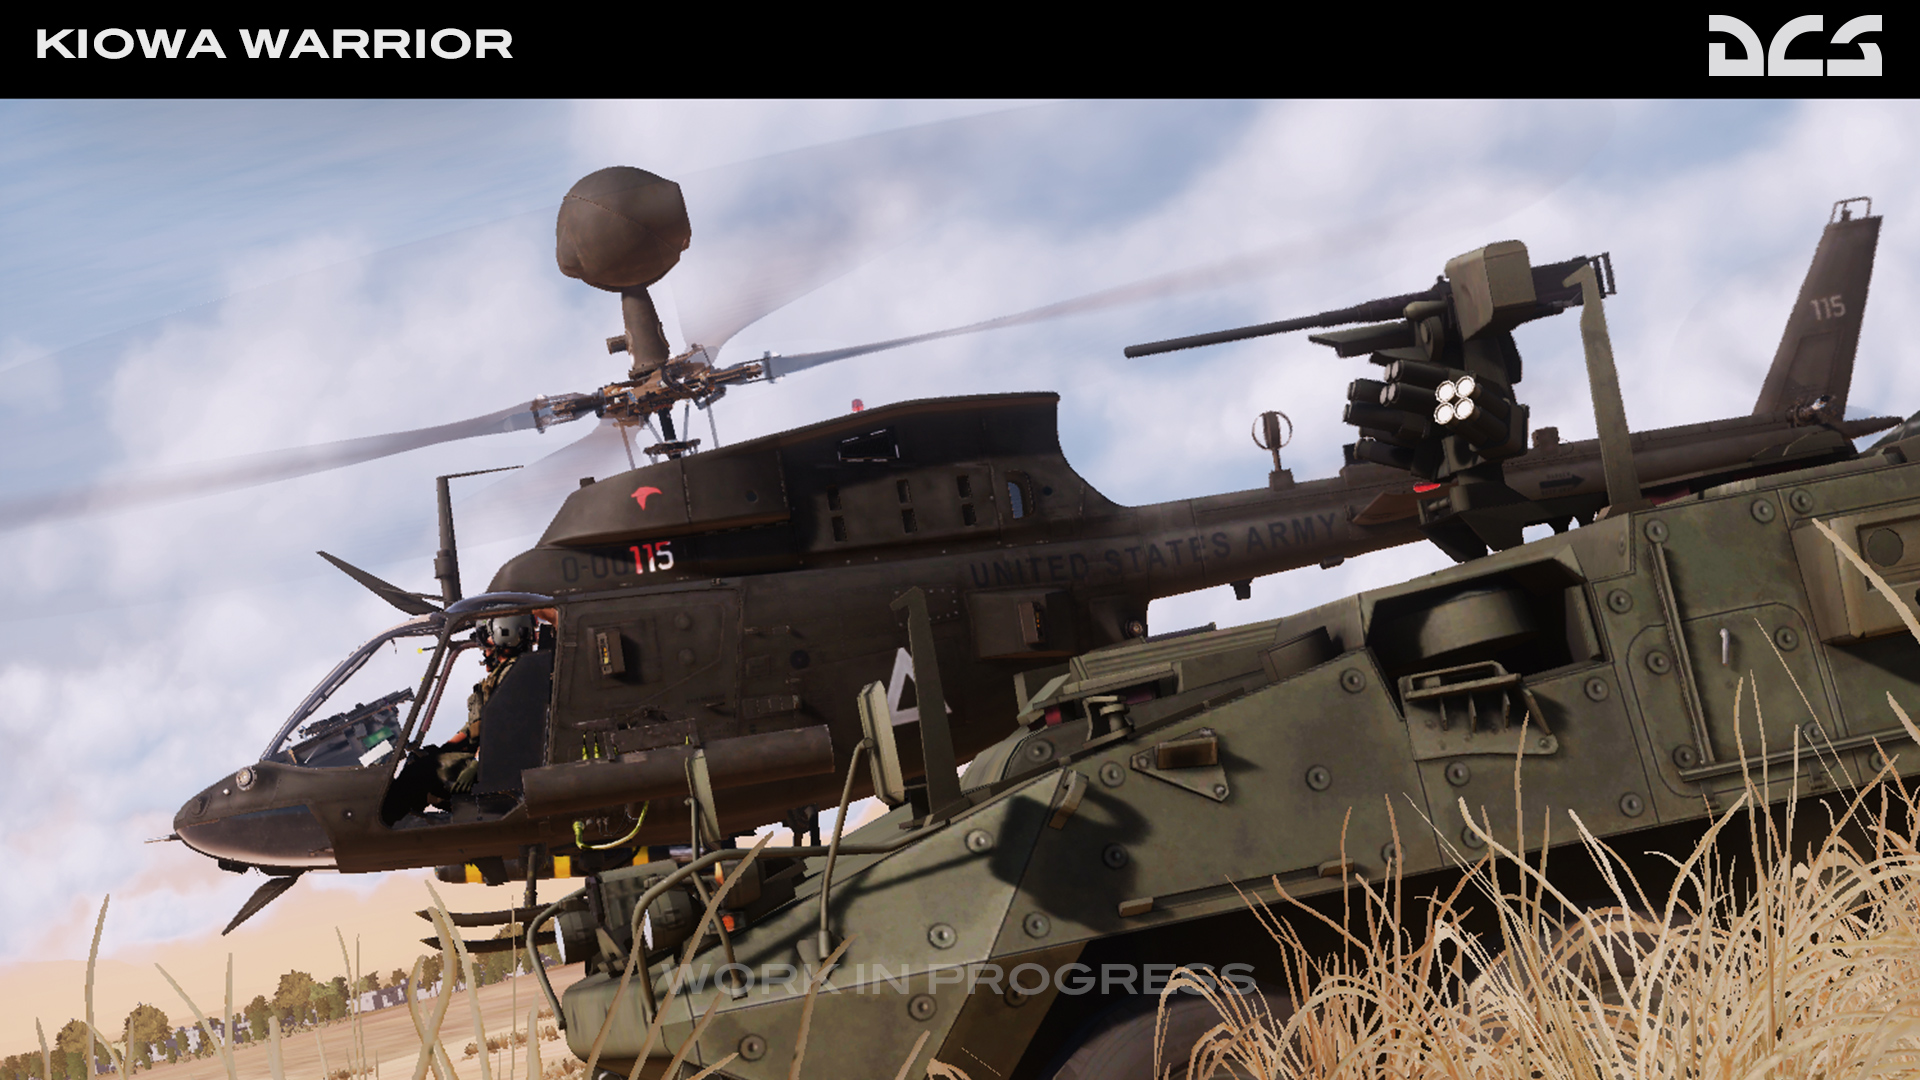 dcs-world-kiowa-warrior.jpg